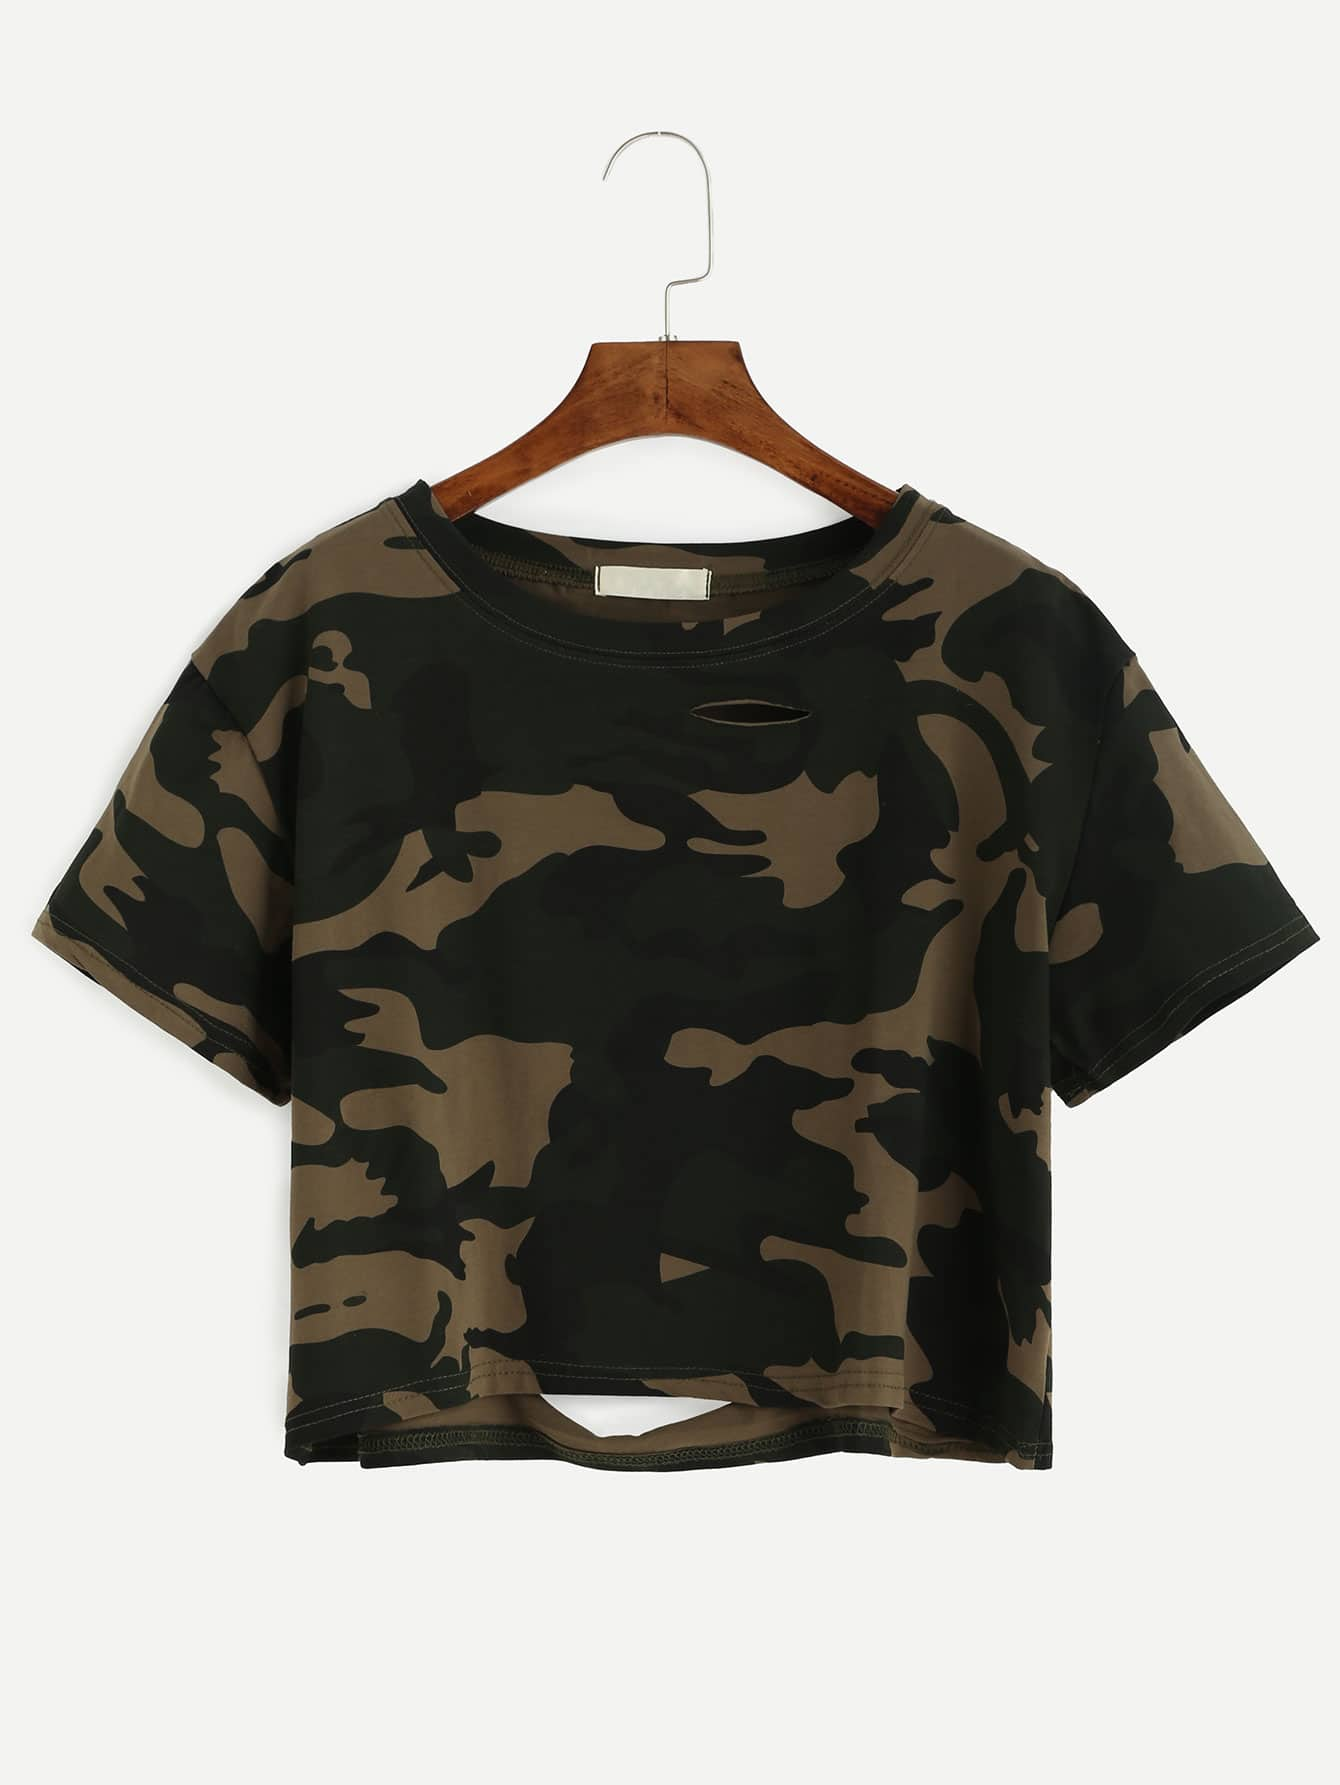 978c5e0ccb Camo Print Distressed Crop T-shirt EmmaCloth-Women Fast Fashion Online